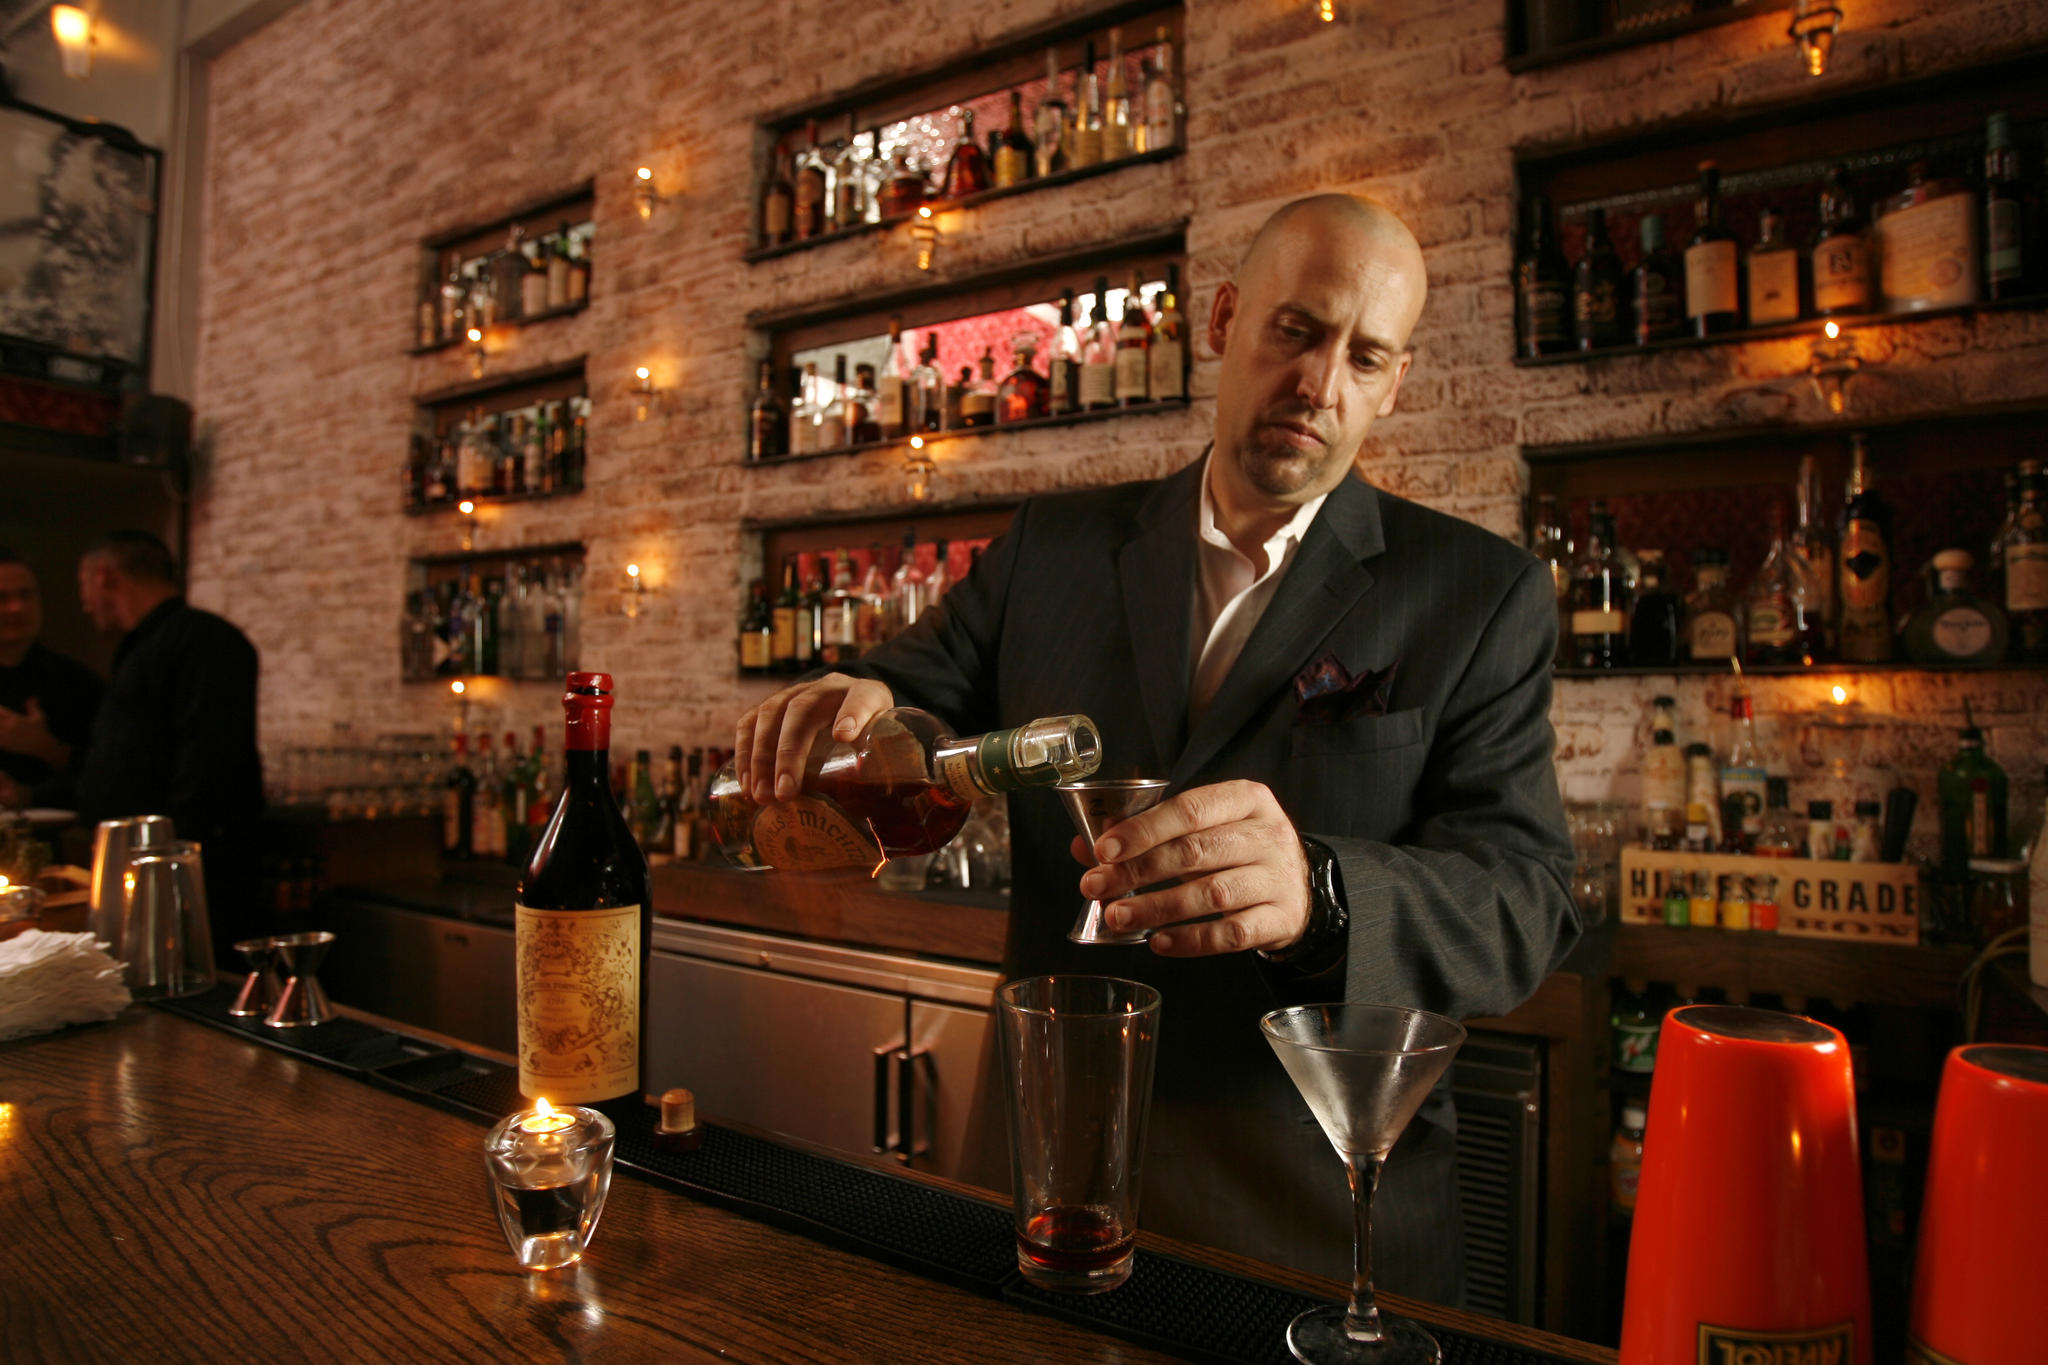 A secret password is needed to enter Bourbon & Branch, a swanky, dimly lit bar known for its handcrafted cocktails.